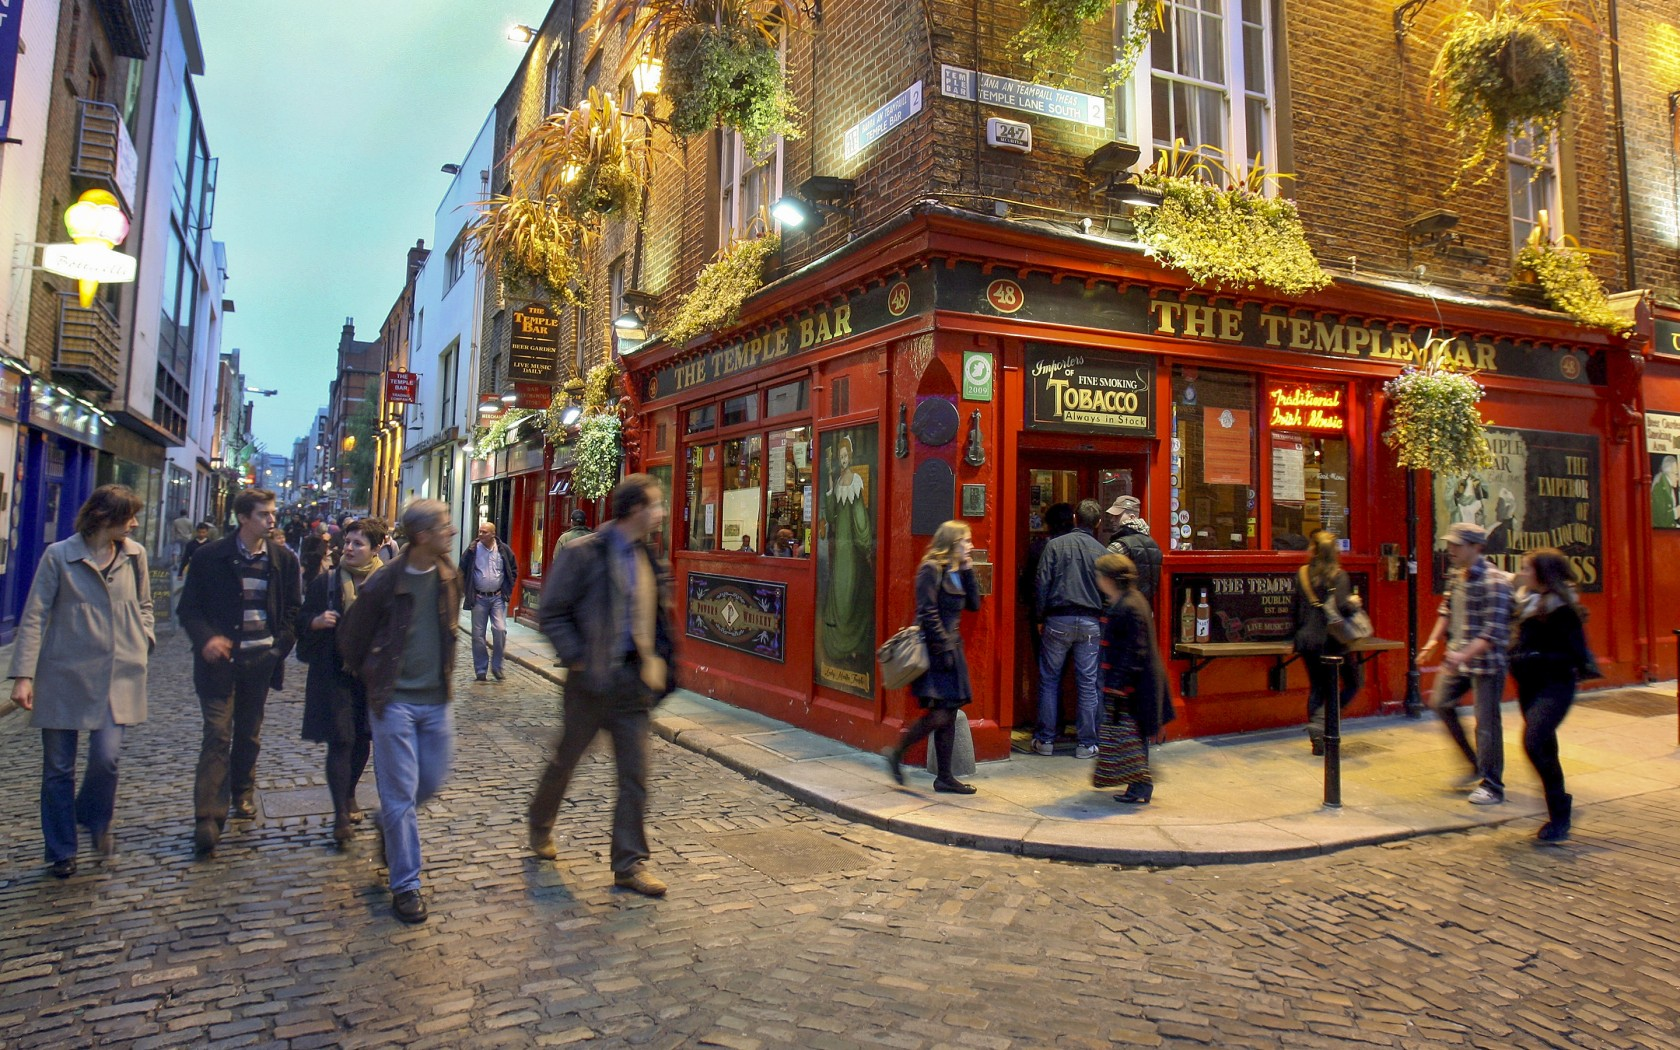 plus beau pub : temple bar